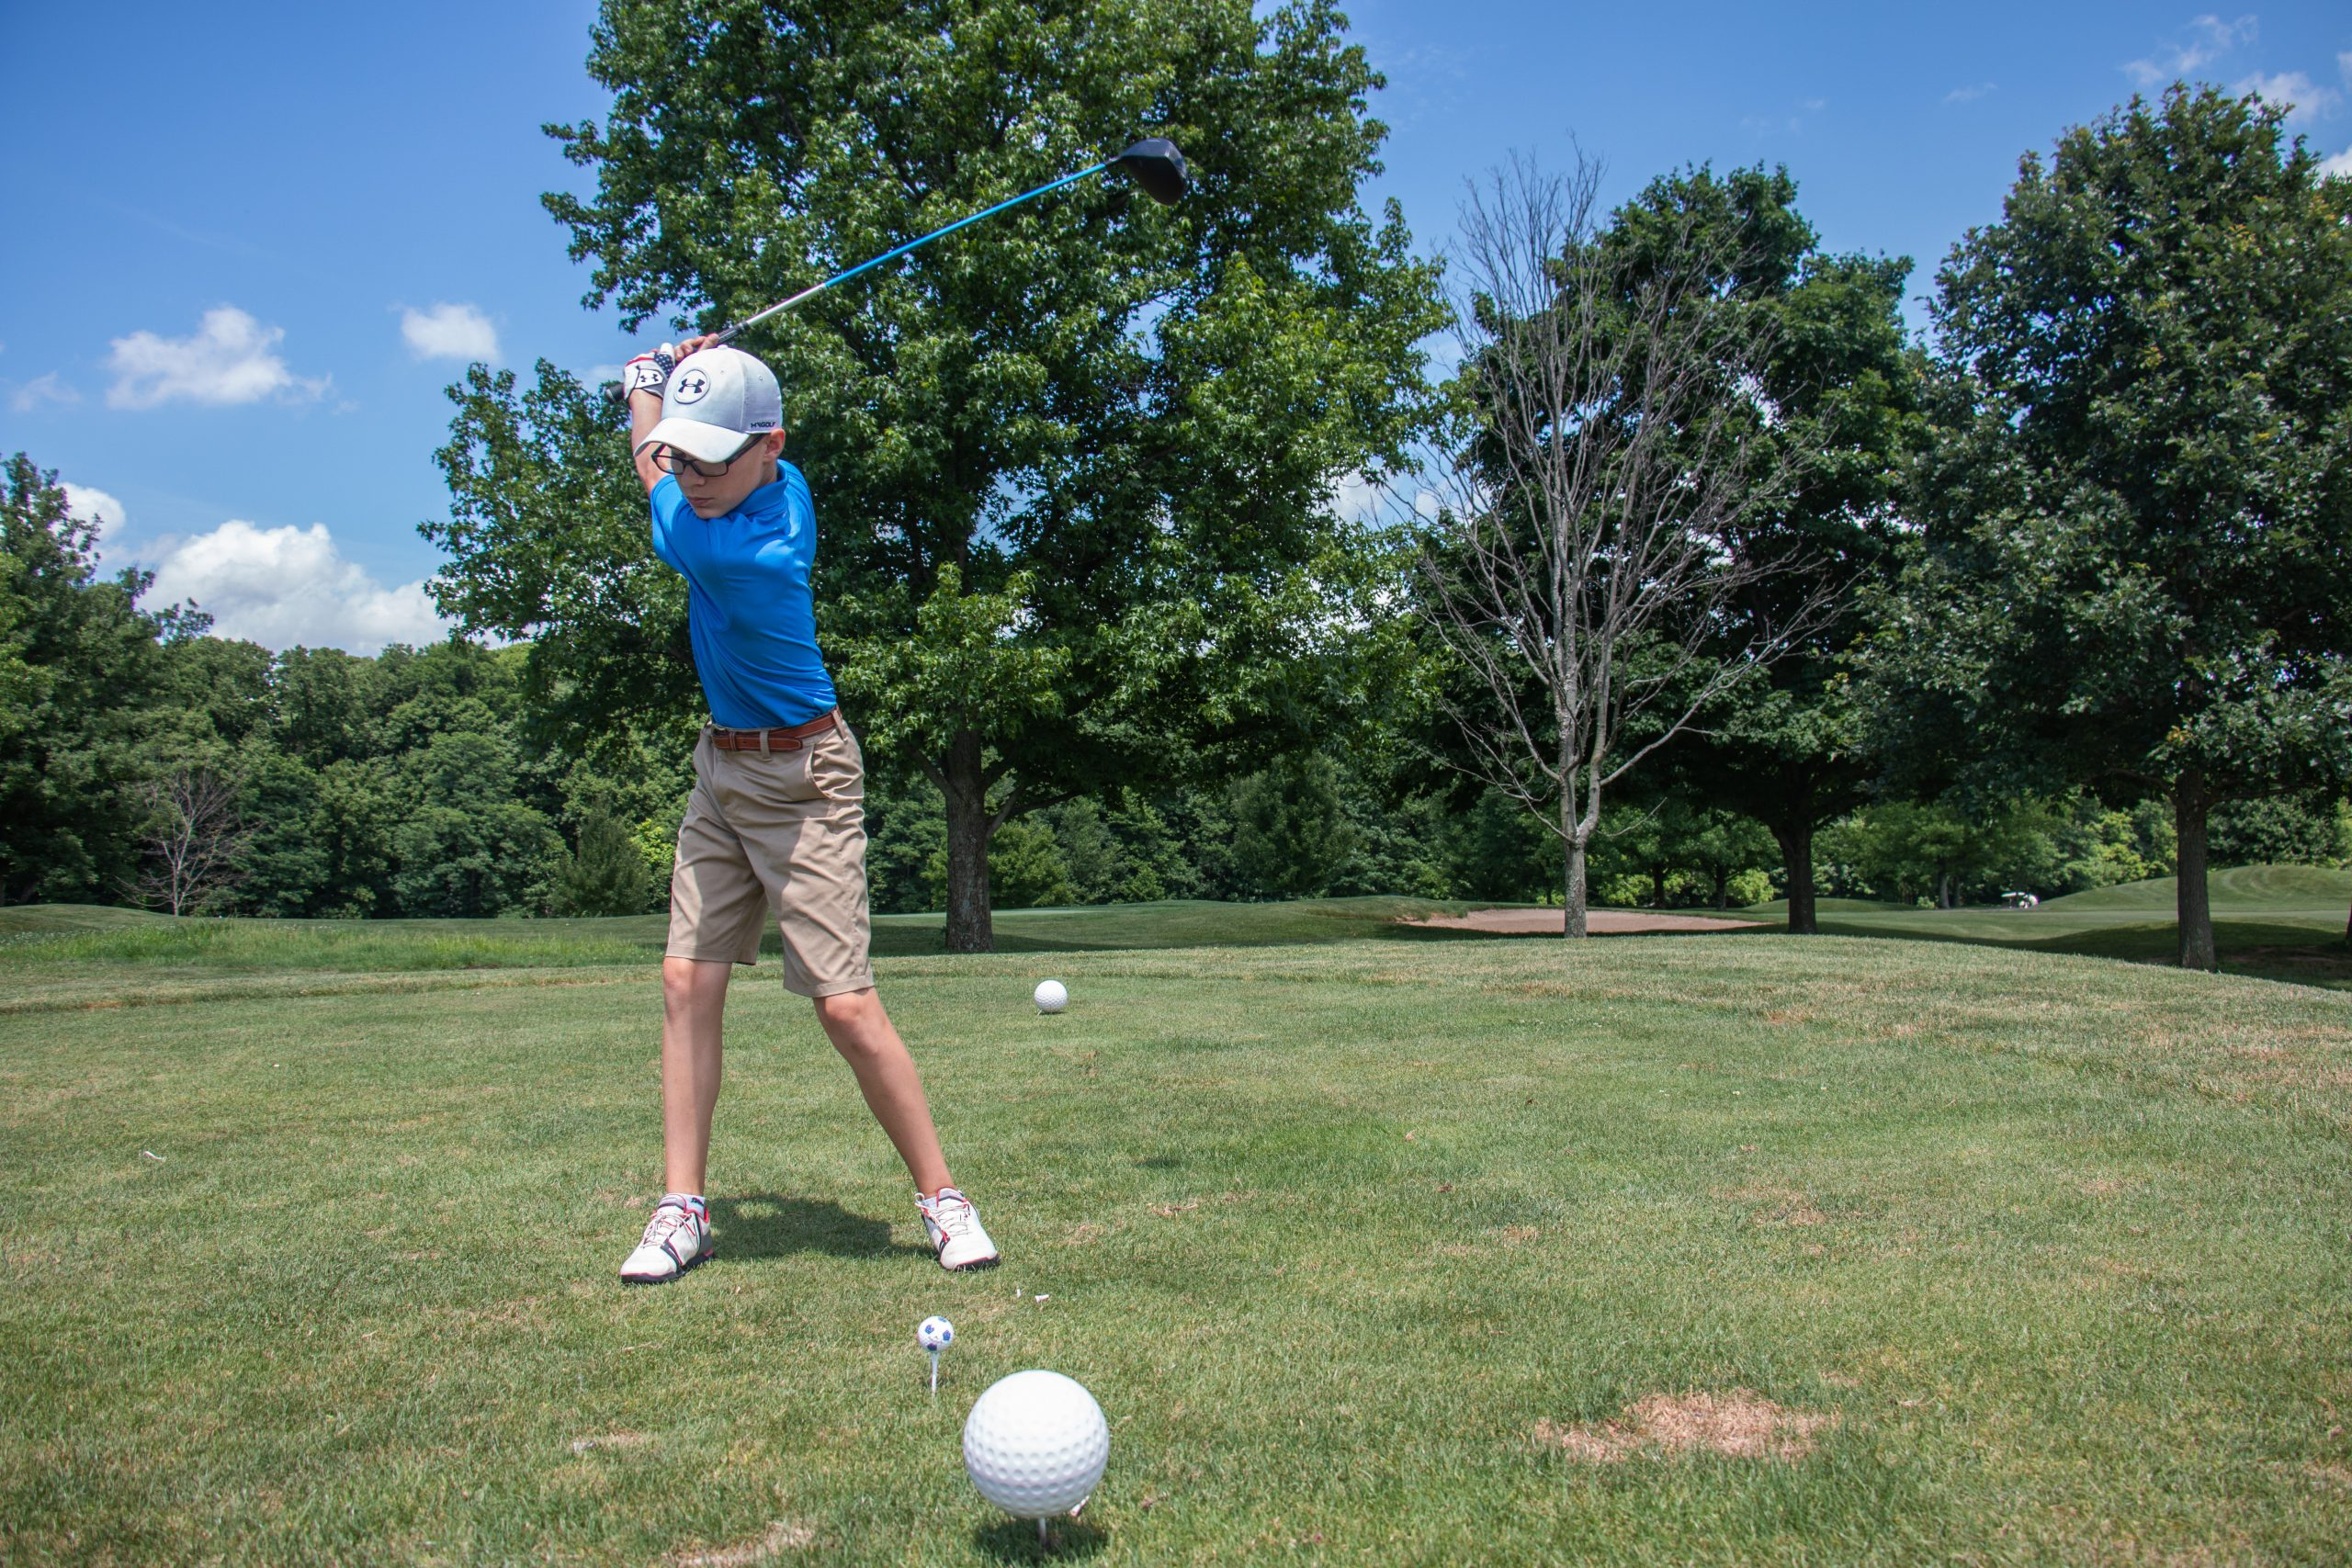 A young boy swings his club, preparing to hit golf ball.